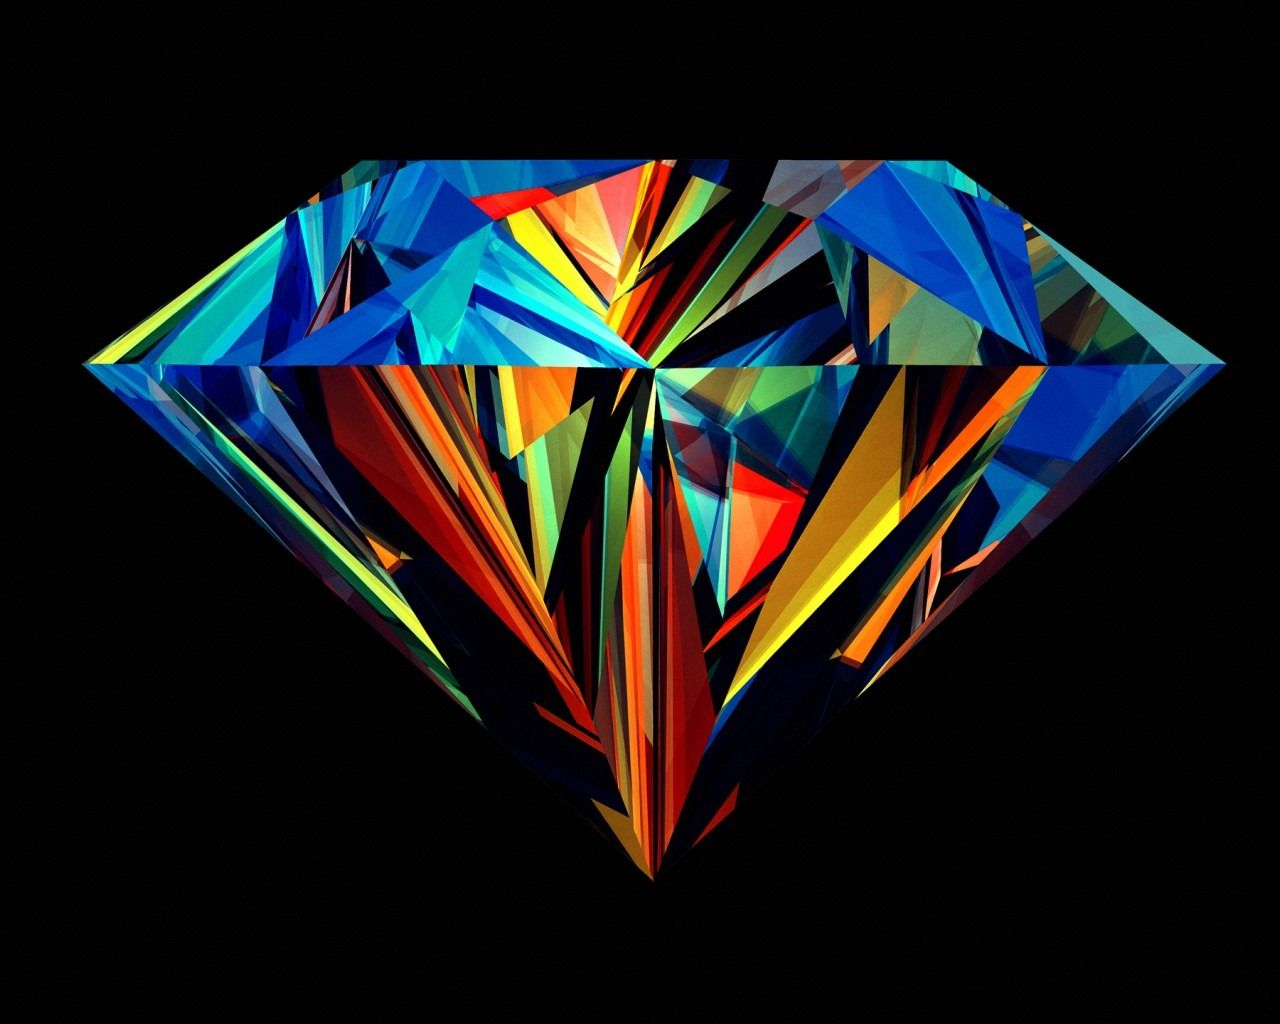 Abstract Colorful Diamond Wallpaper 3d Best Free Hd Images Com